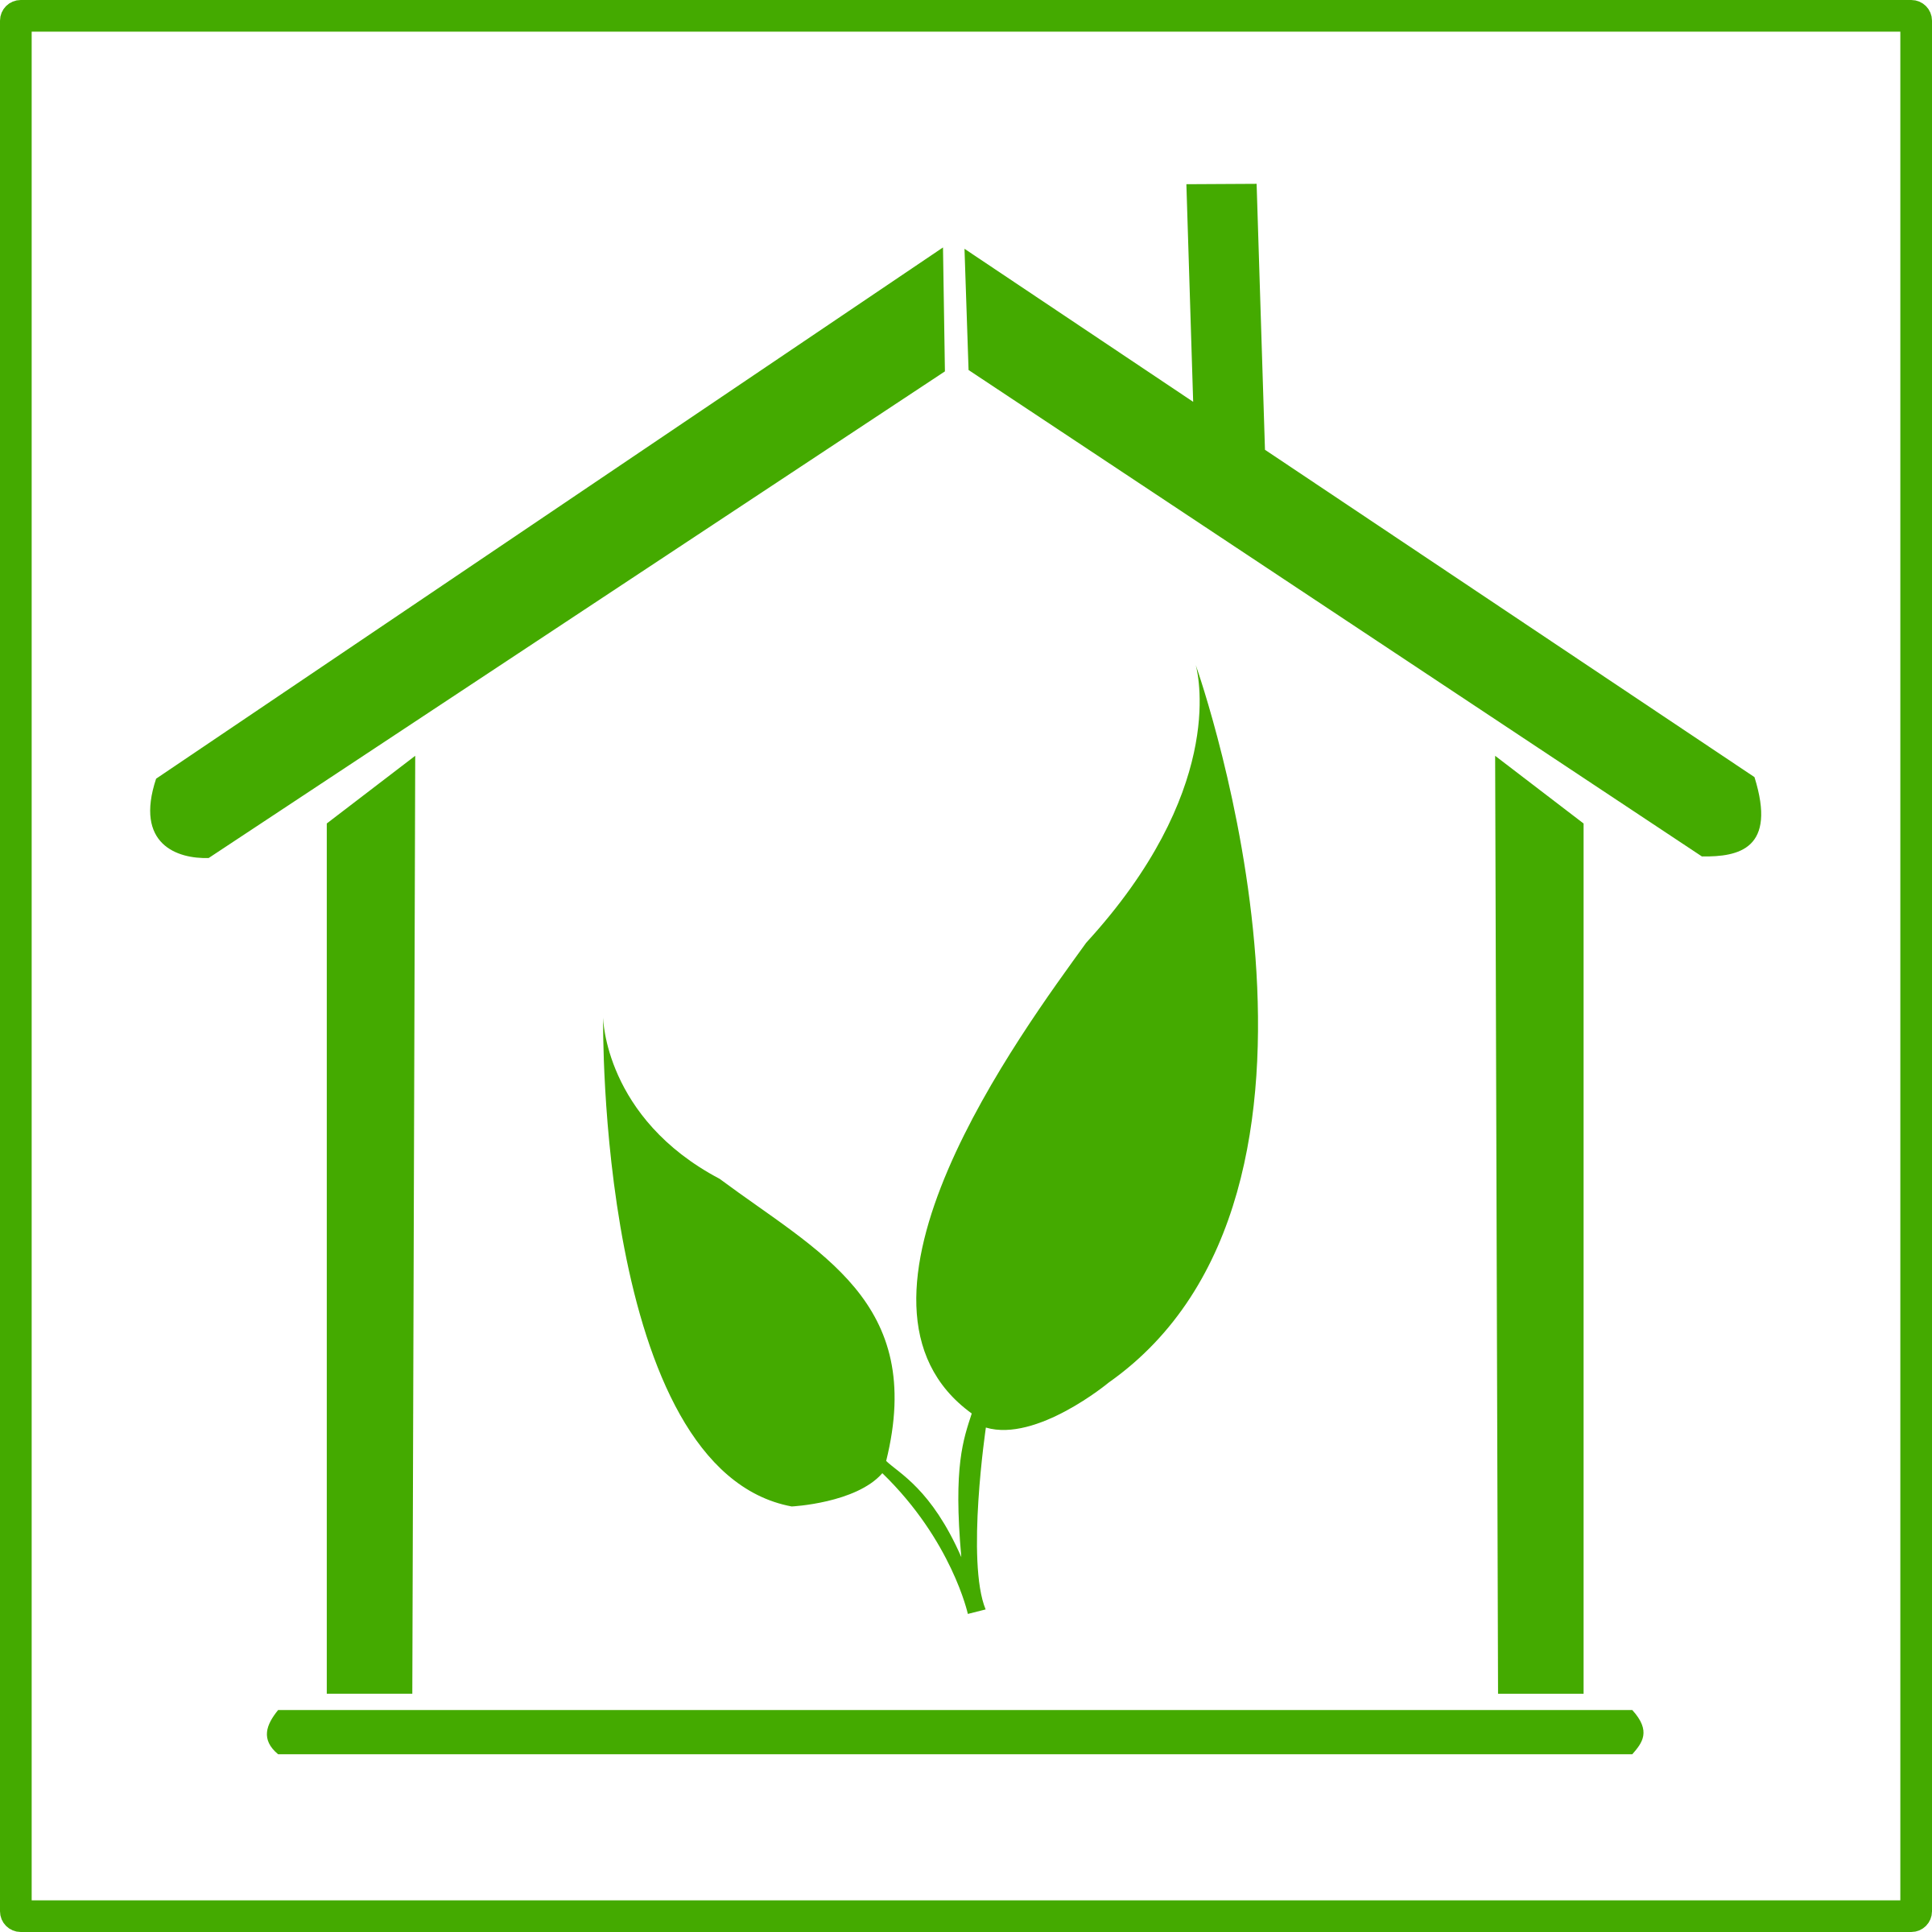 Houses clipart green. Eco house icon big